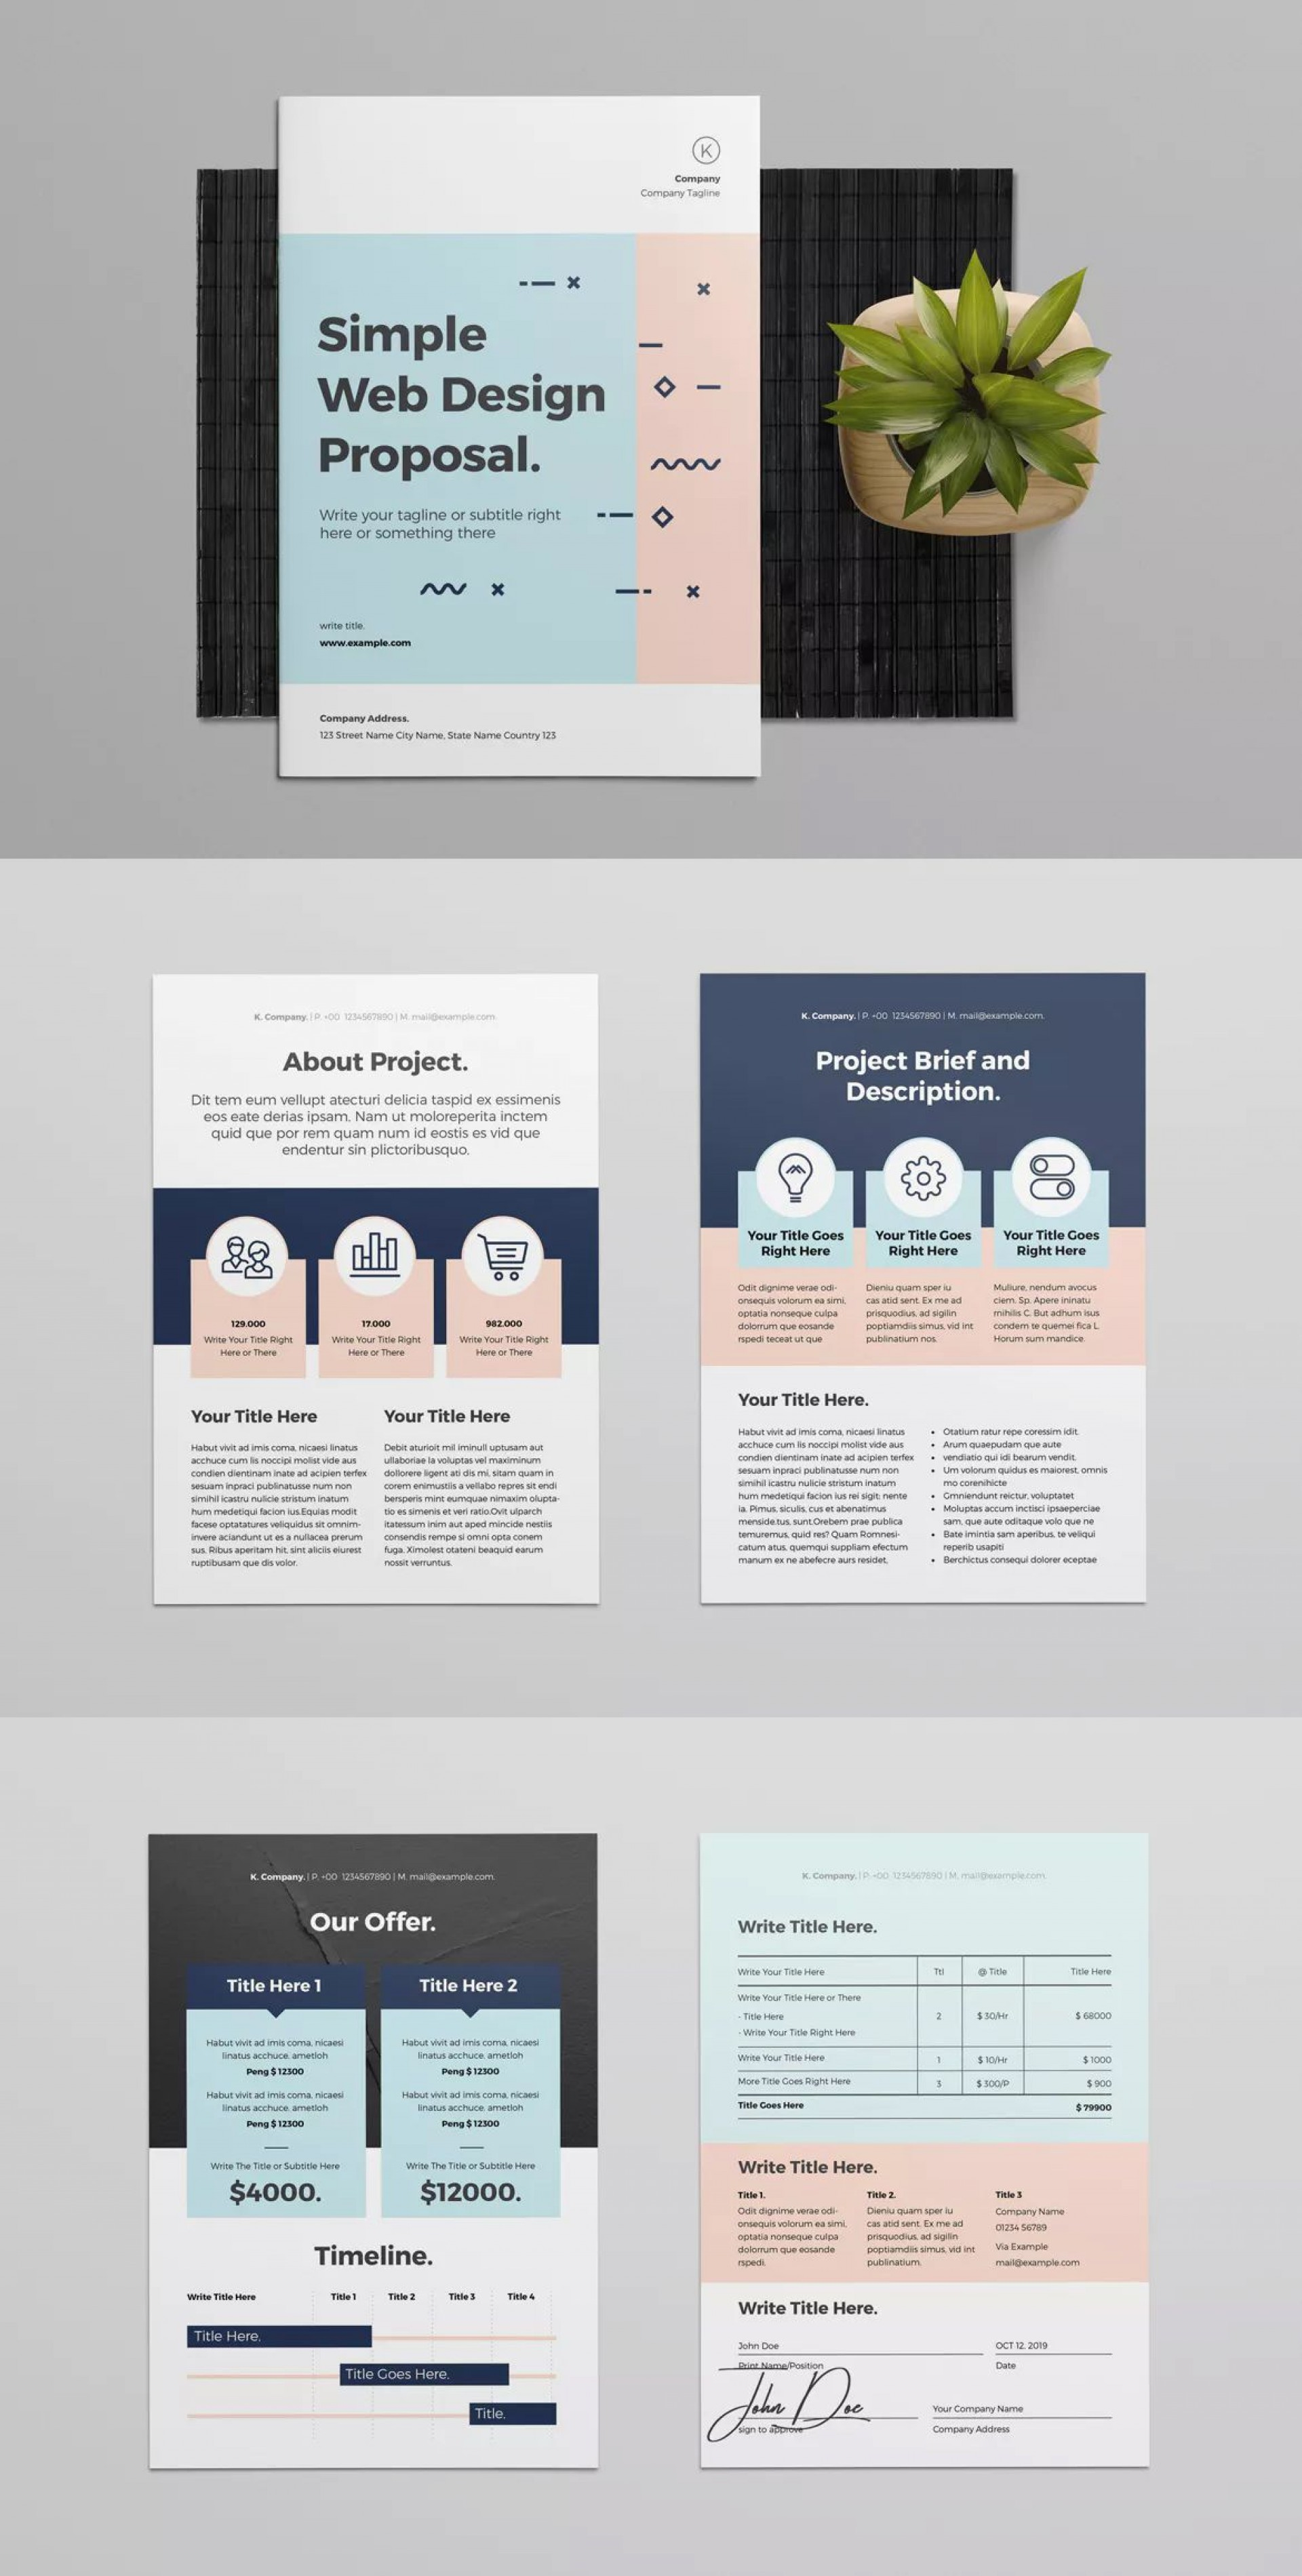 000 Awesome Graphic Design Proposal Template Indesign High Def  Free1920